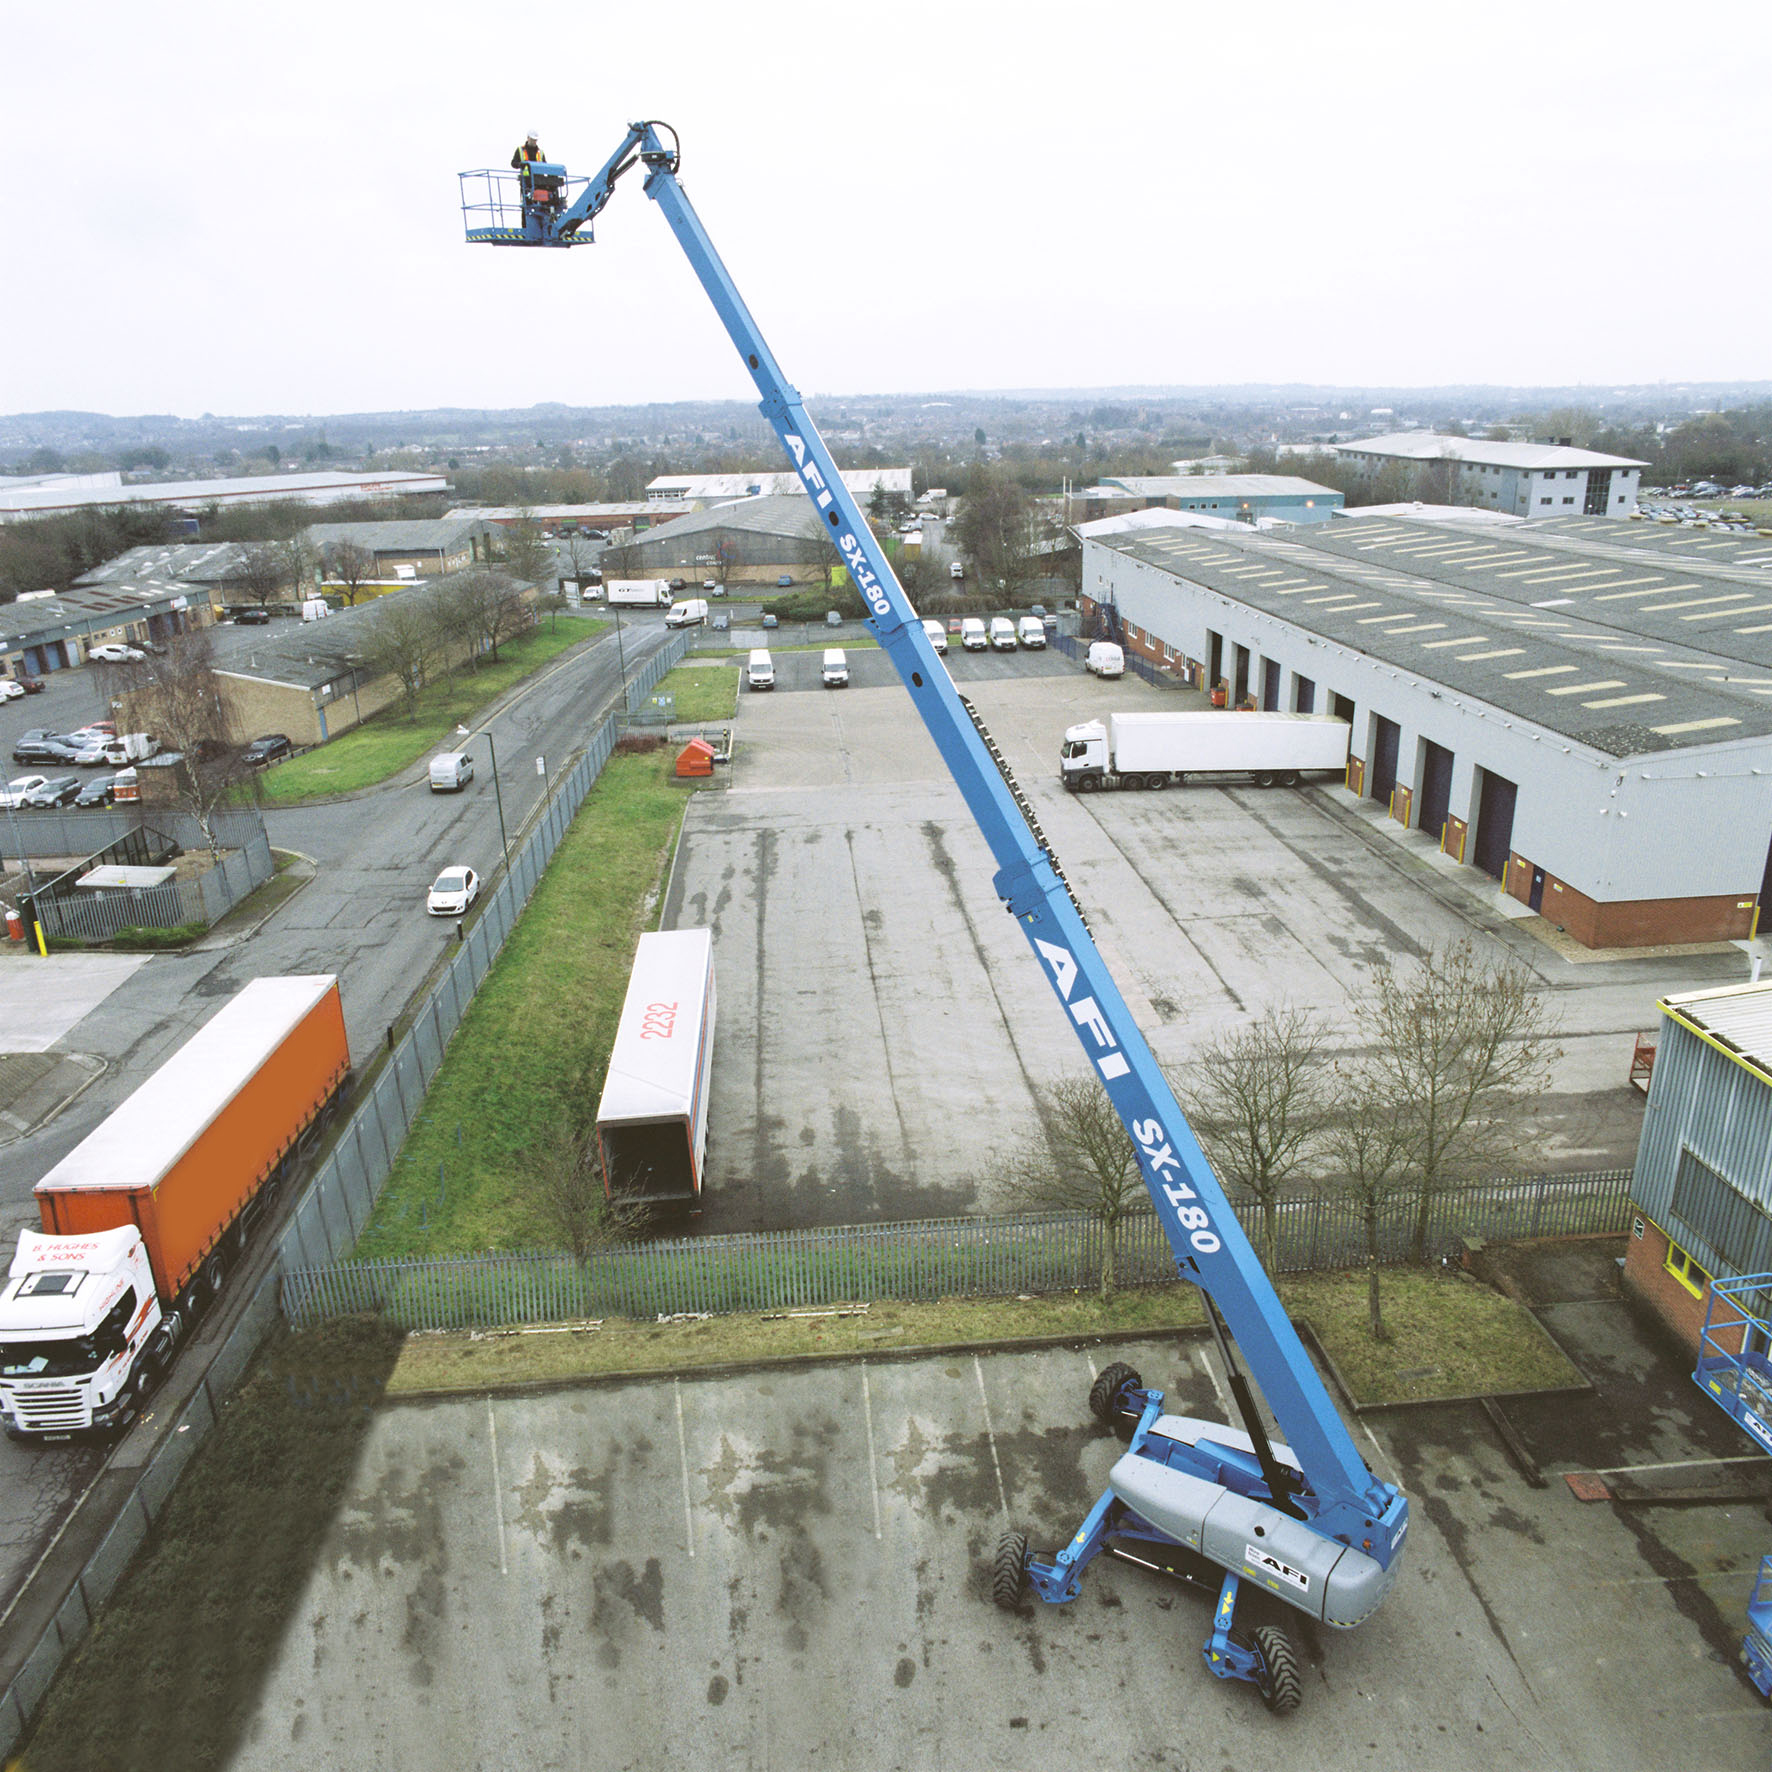 PRESS RELEASE: AFI Purchases Two Of The World's Largest Boom Lifts